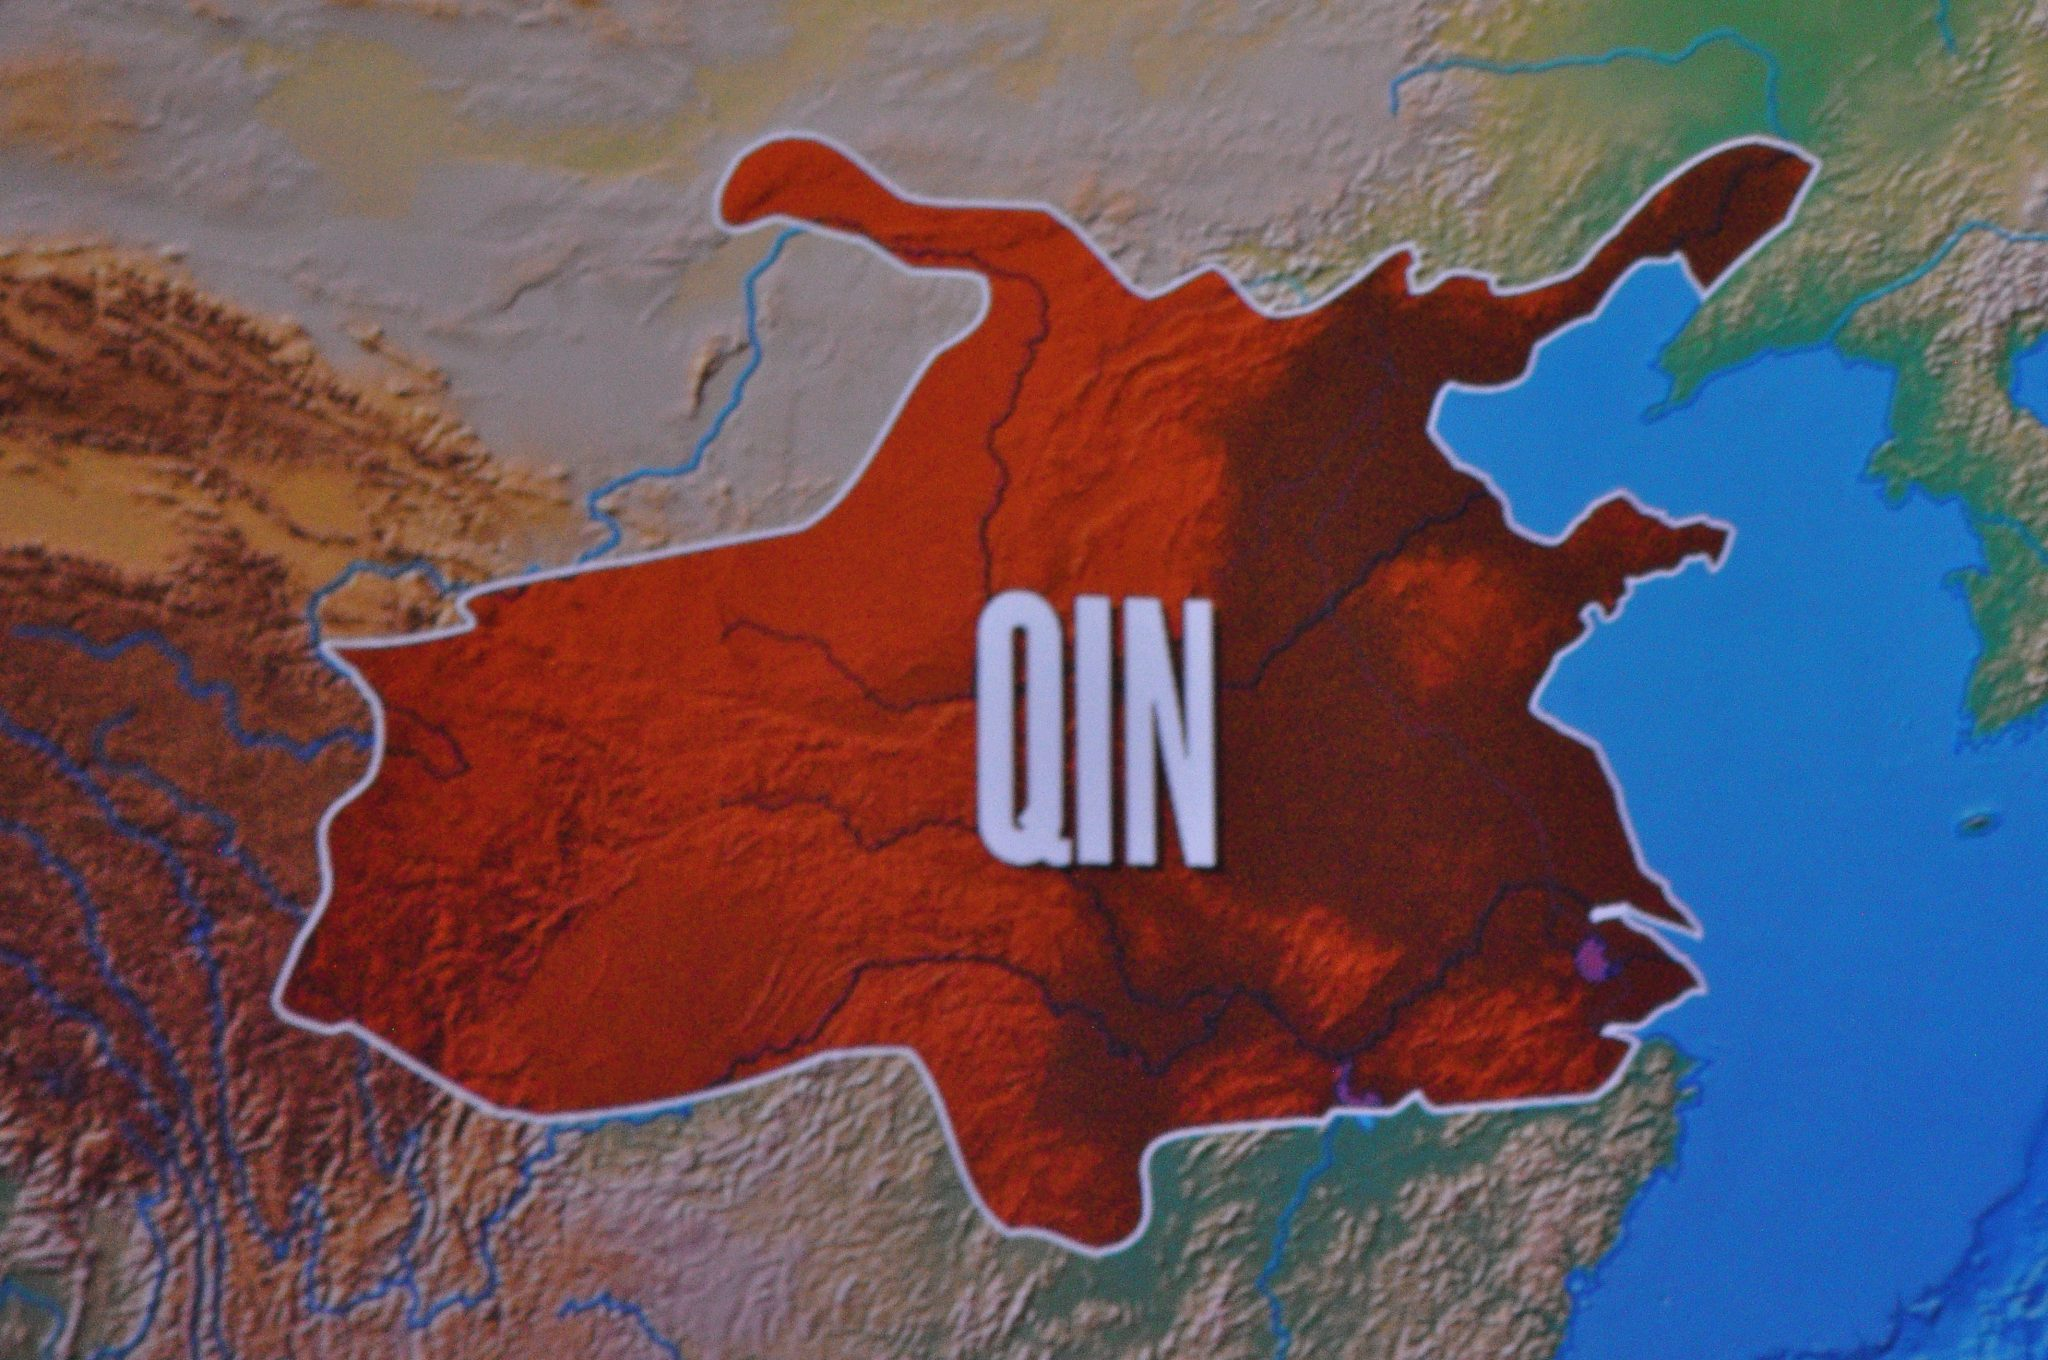 """Qin region"", at the Terracotta Soldiers Exhibit Asian Arts Museum @ Julie Pimentel, 2013, CC BY-NC 2.0"